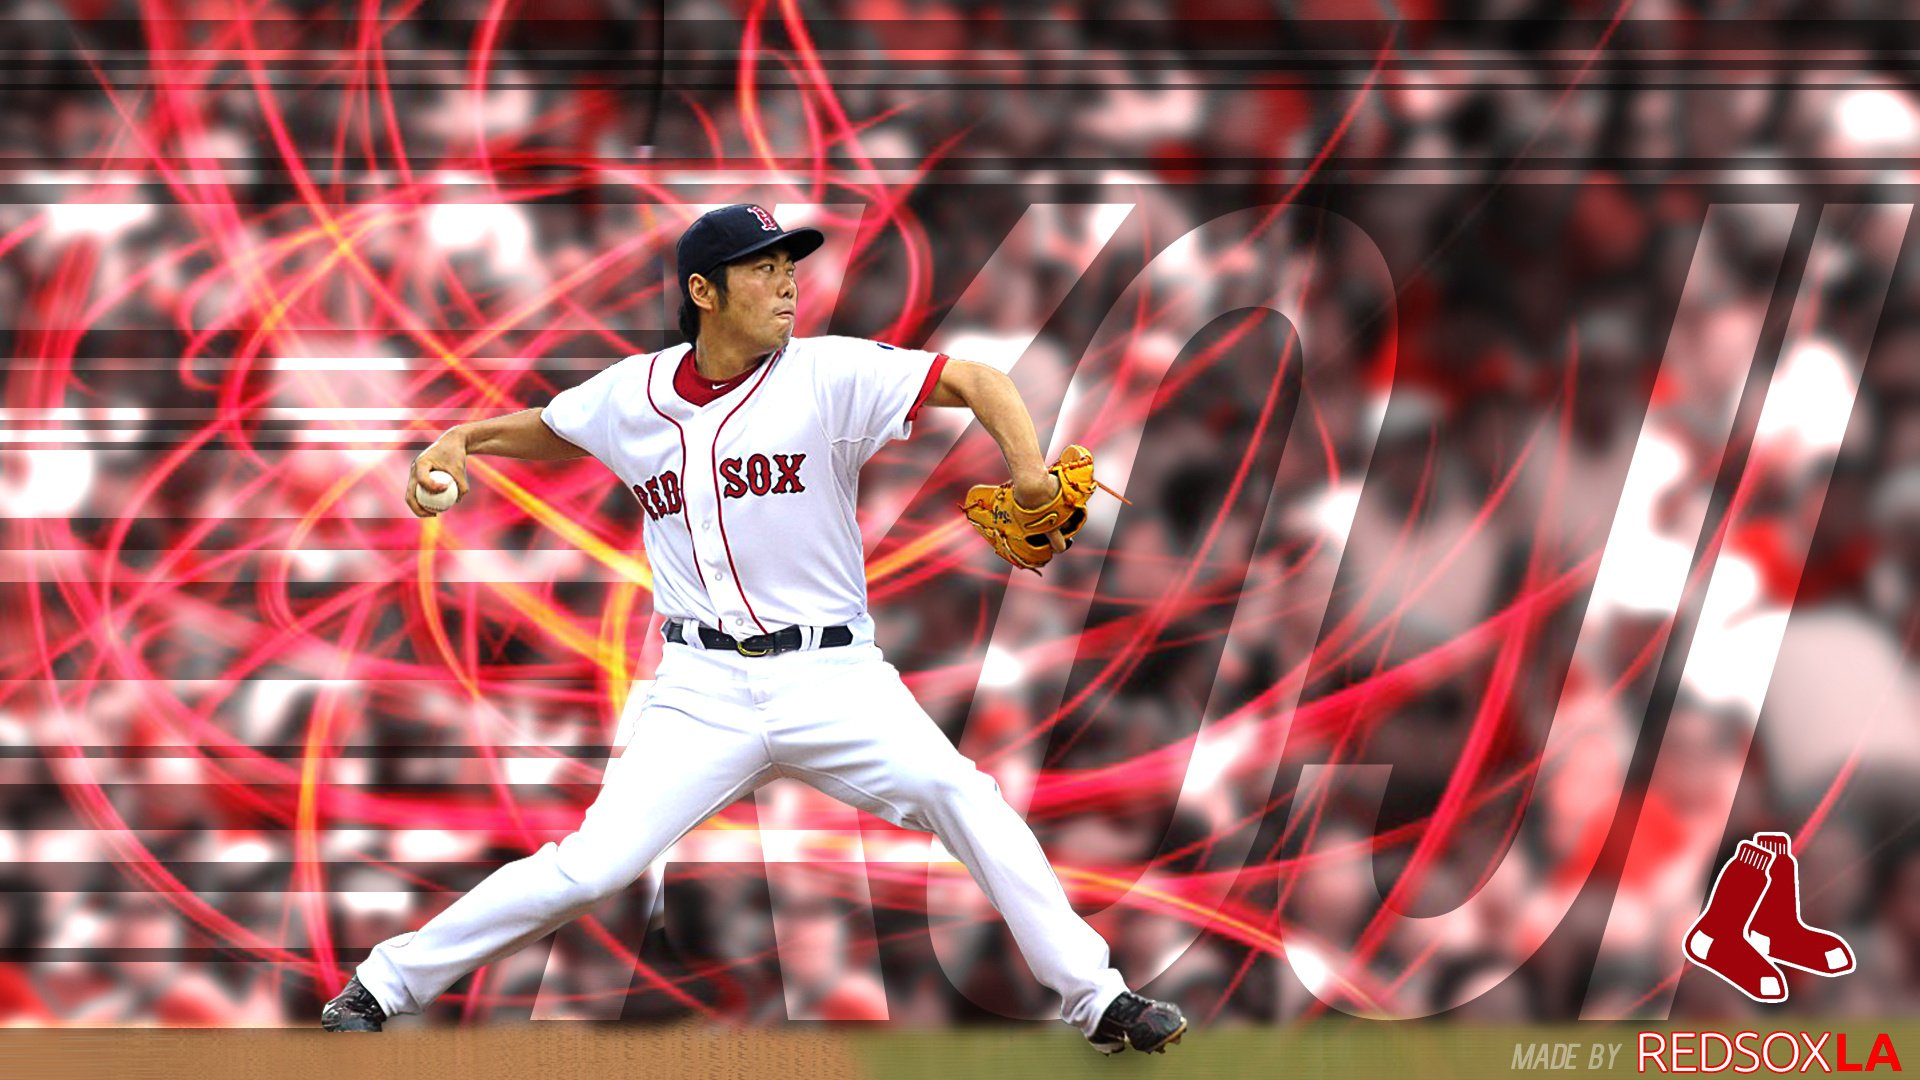 Boston Red Sox Widescreen HD Wallpaper wallpaperwiki 1920x1080